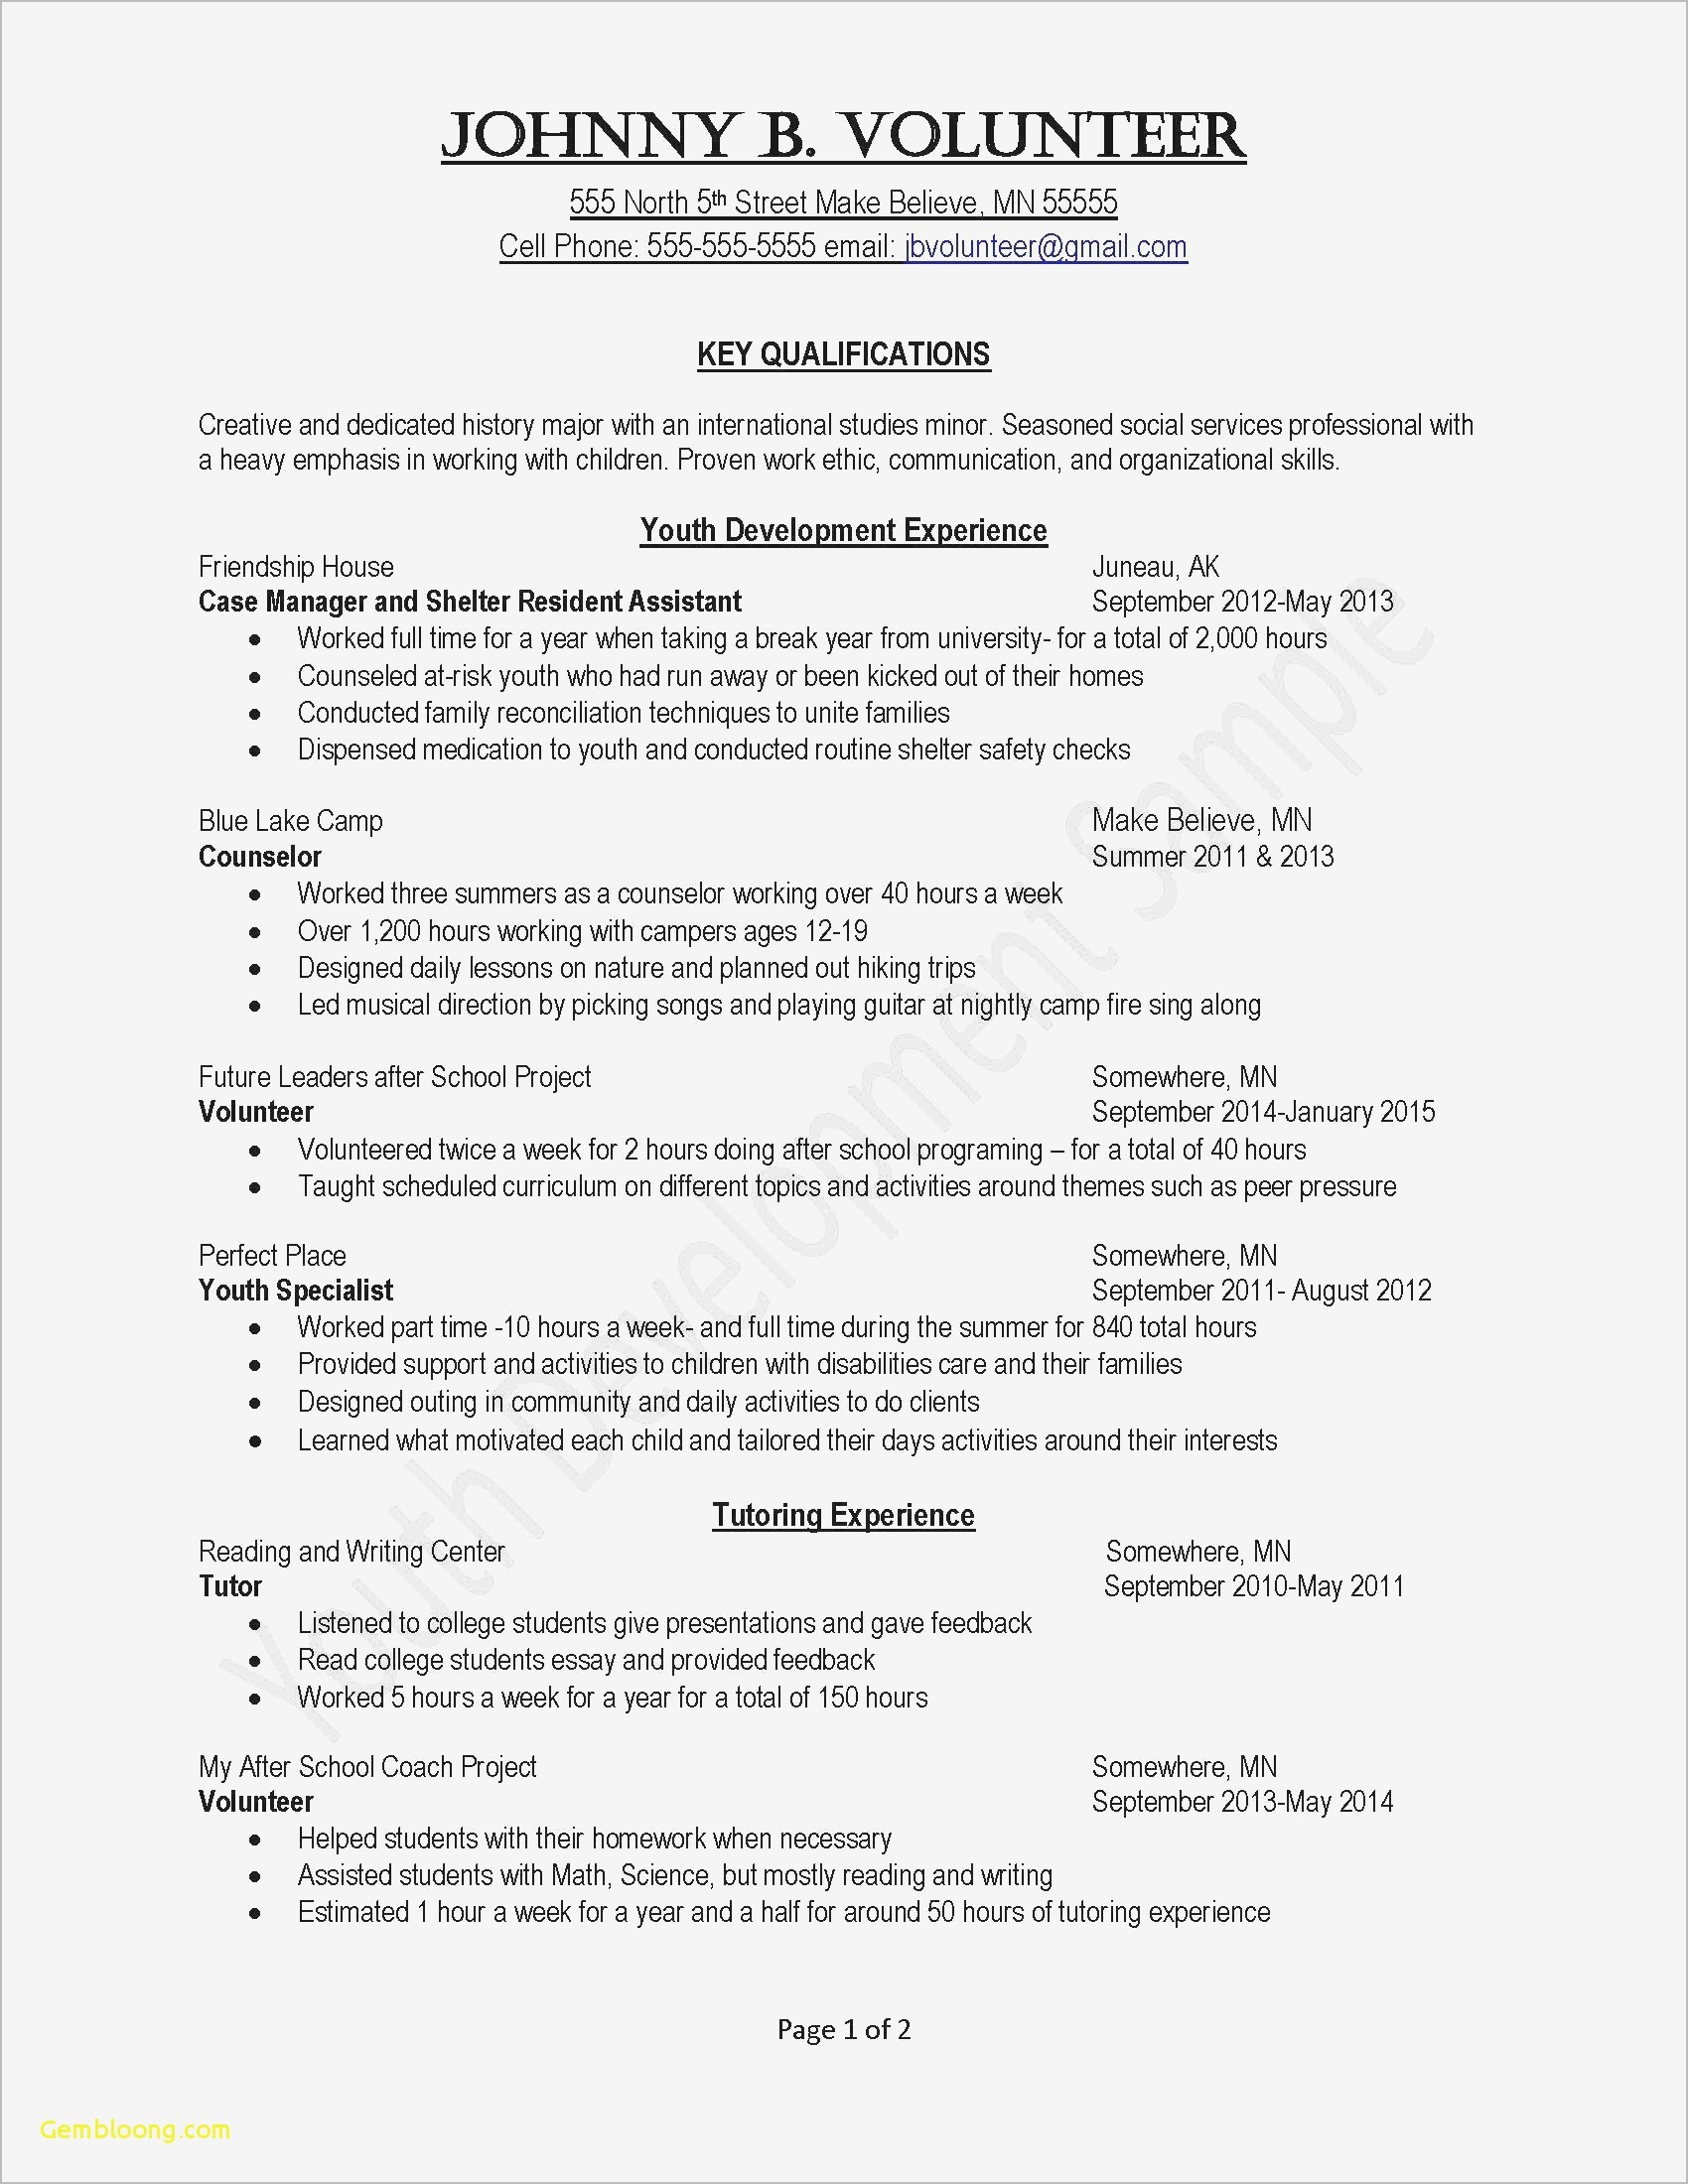 Simple Cover Letter Template Word - Job Fer Letter Template Us Copy Od Consultant Cover Letter Fungram